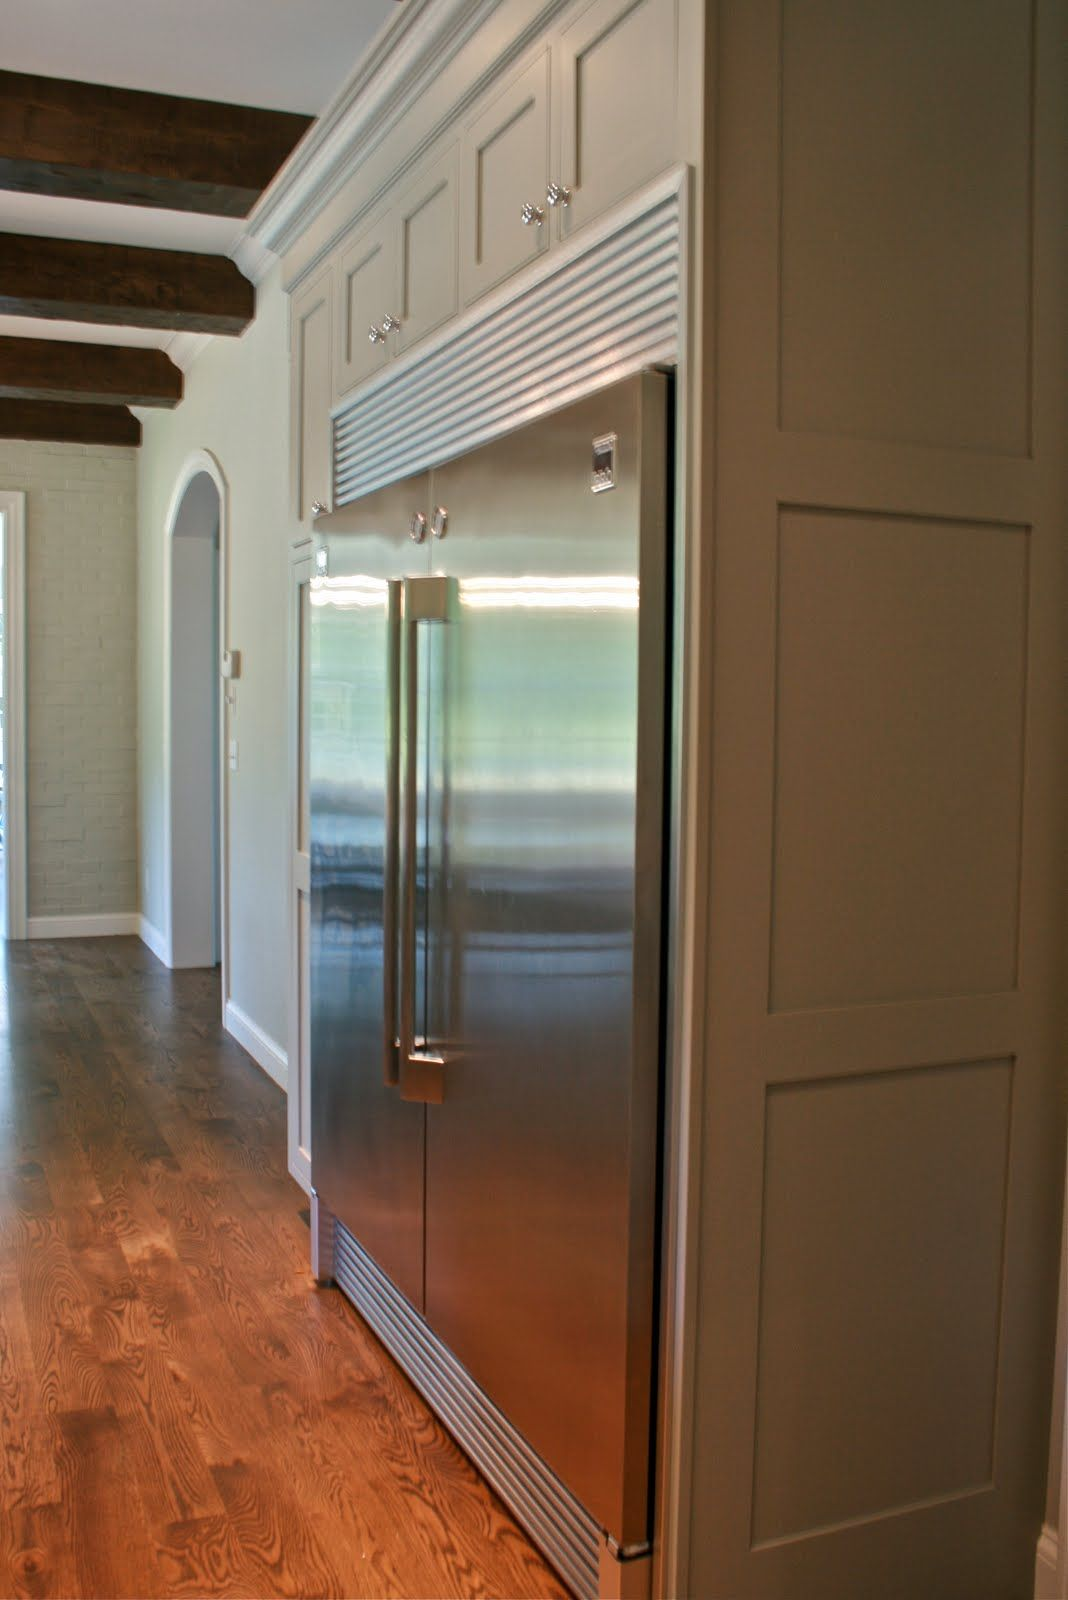 Full Size Fridge And Freezer Placed Side By Side Kitchen Inspirations Kitchen Refrigerator Home